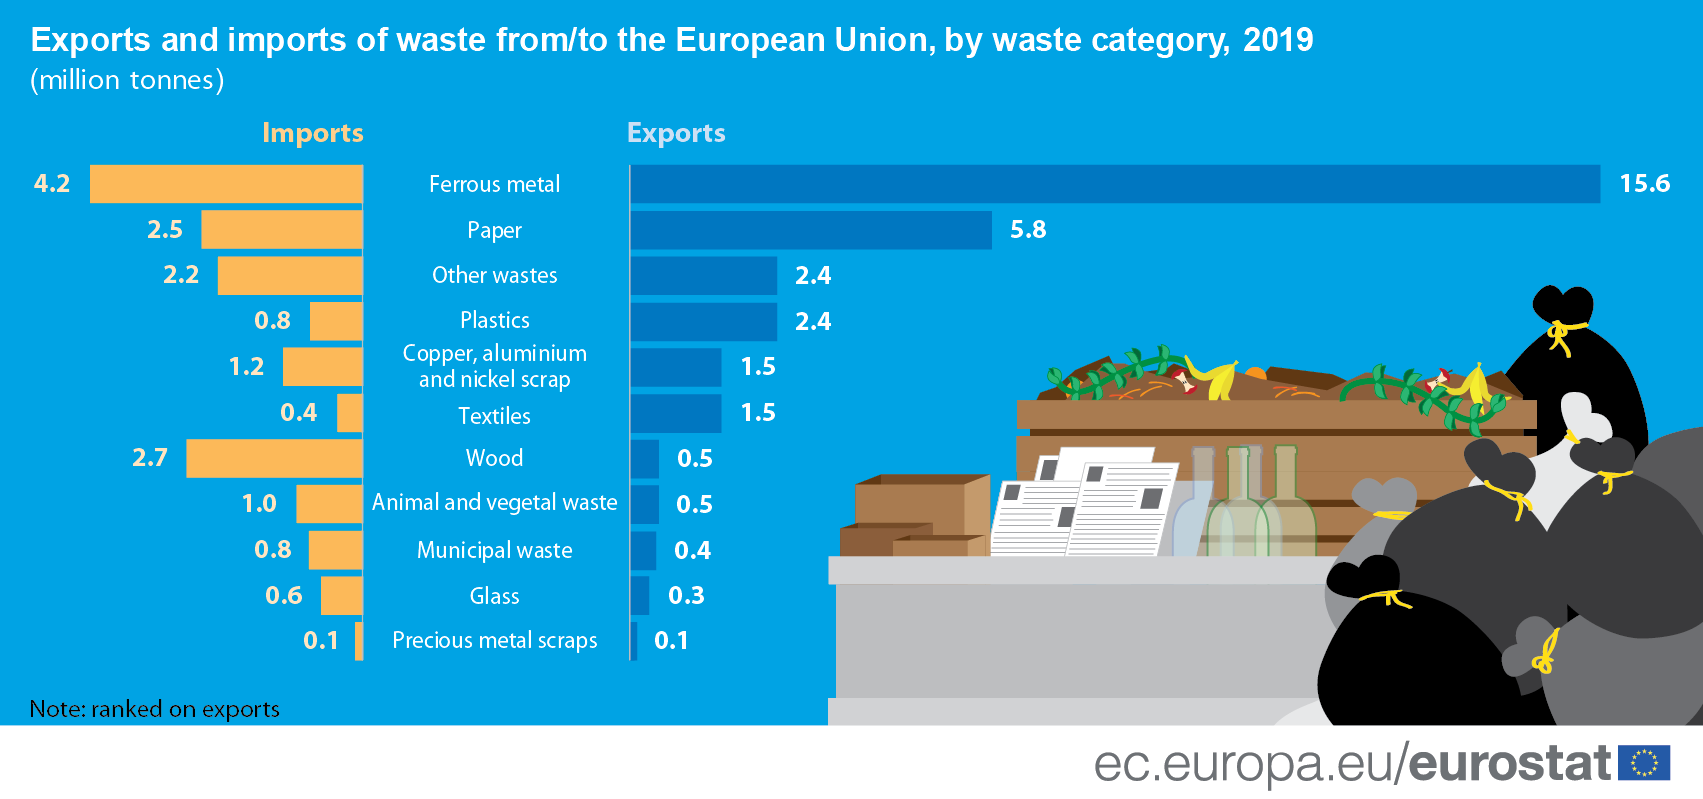 Infographic/bar chart: Exports and imports of waste from/to the European Union, by waste category, in million tonnes, 2019